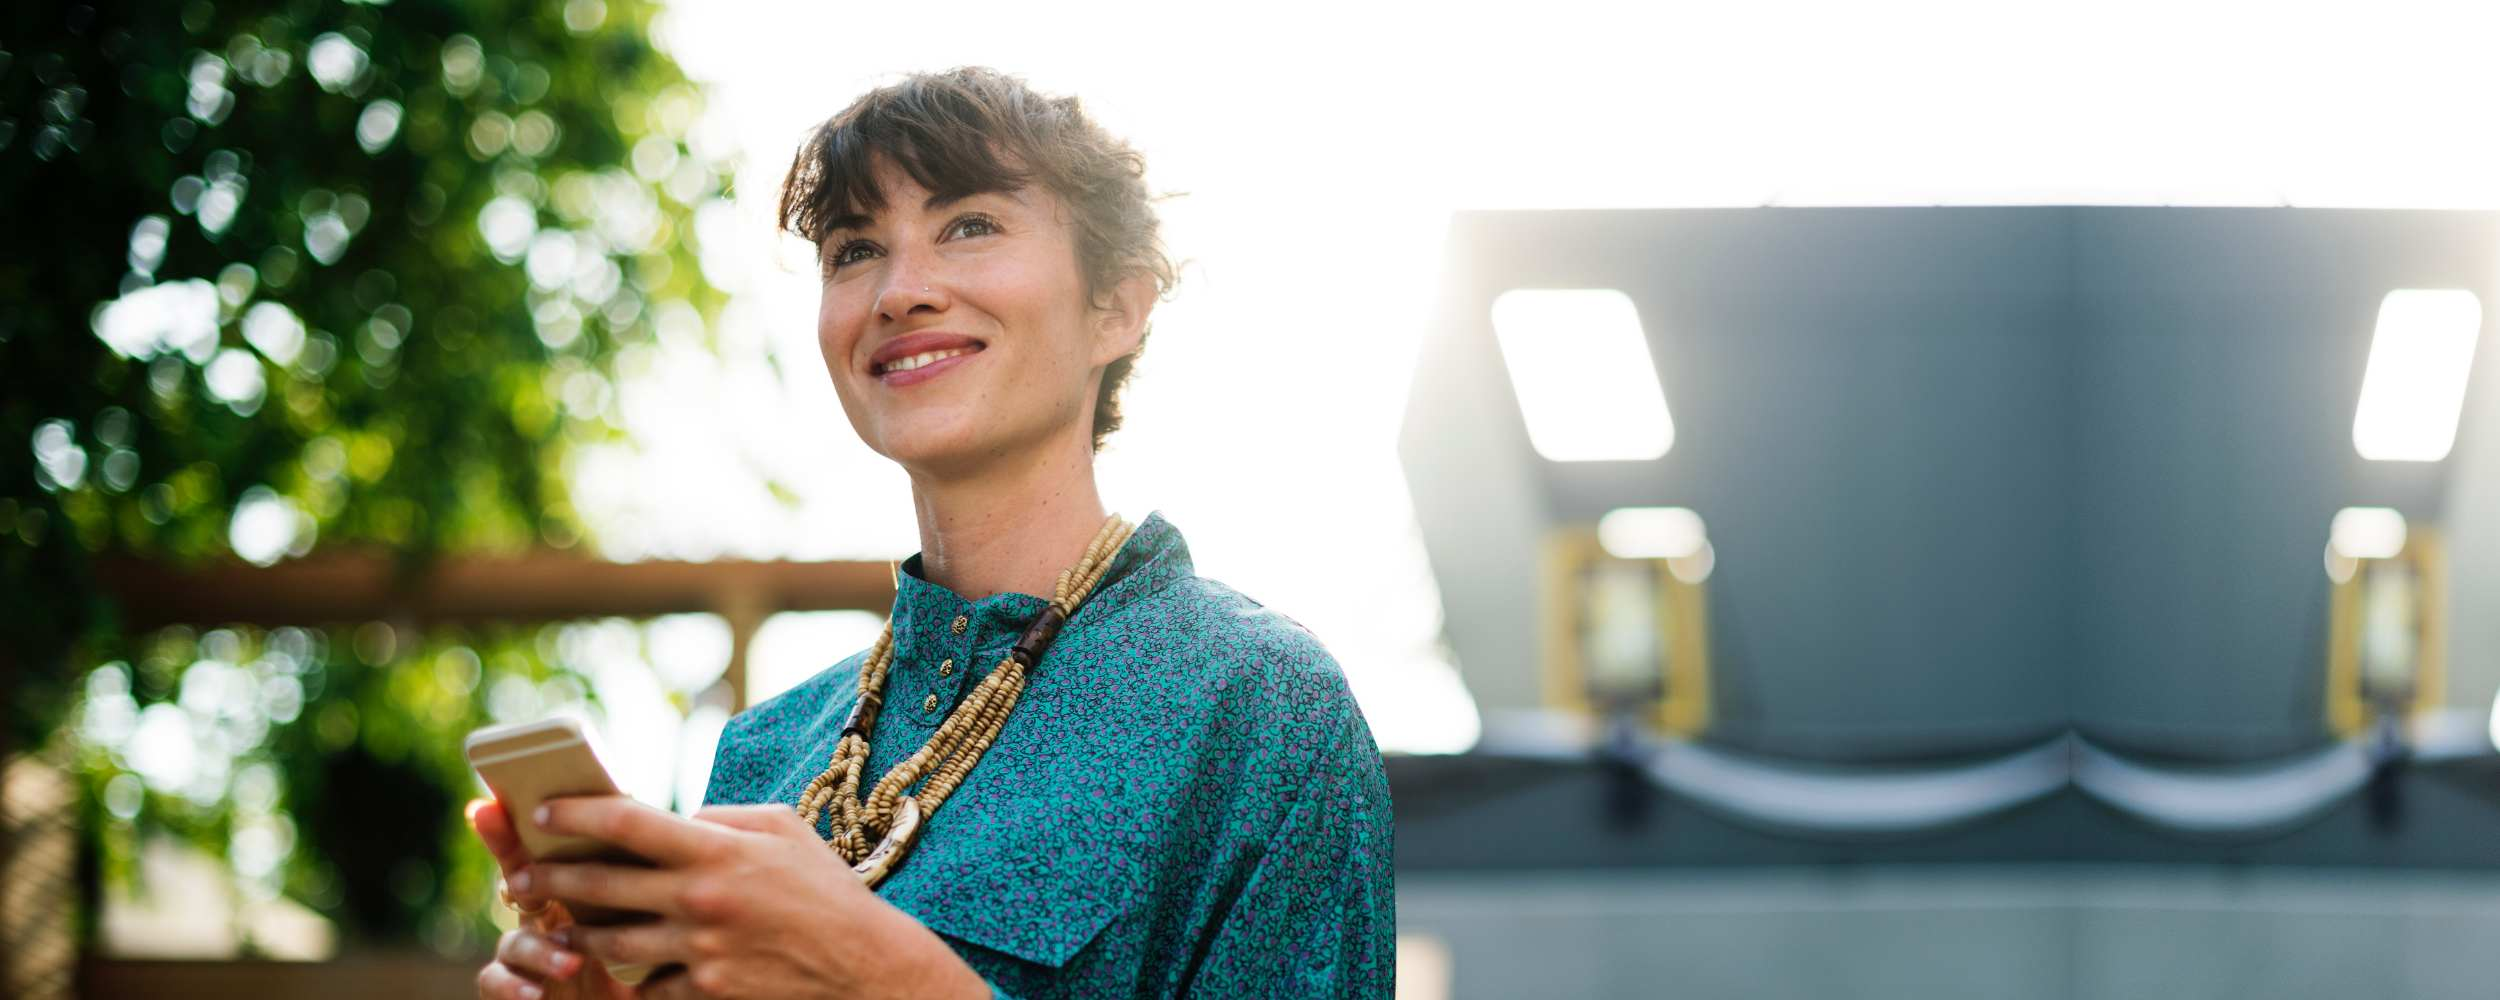 How to find Success as a Sole Trader - Articles Hubspot